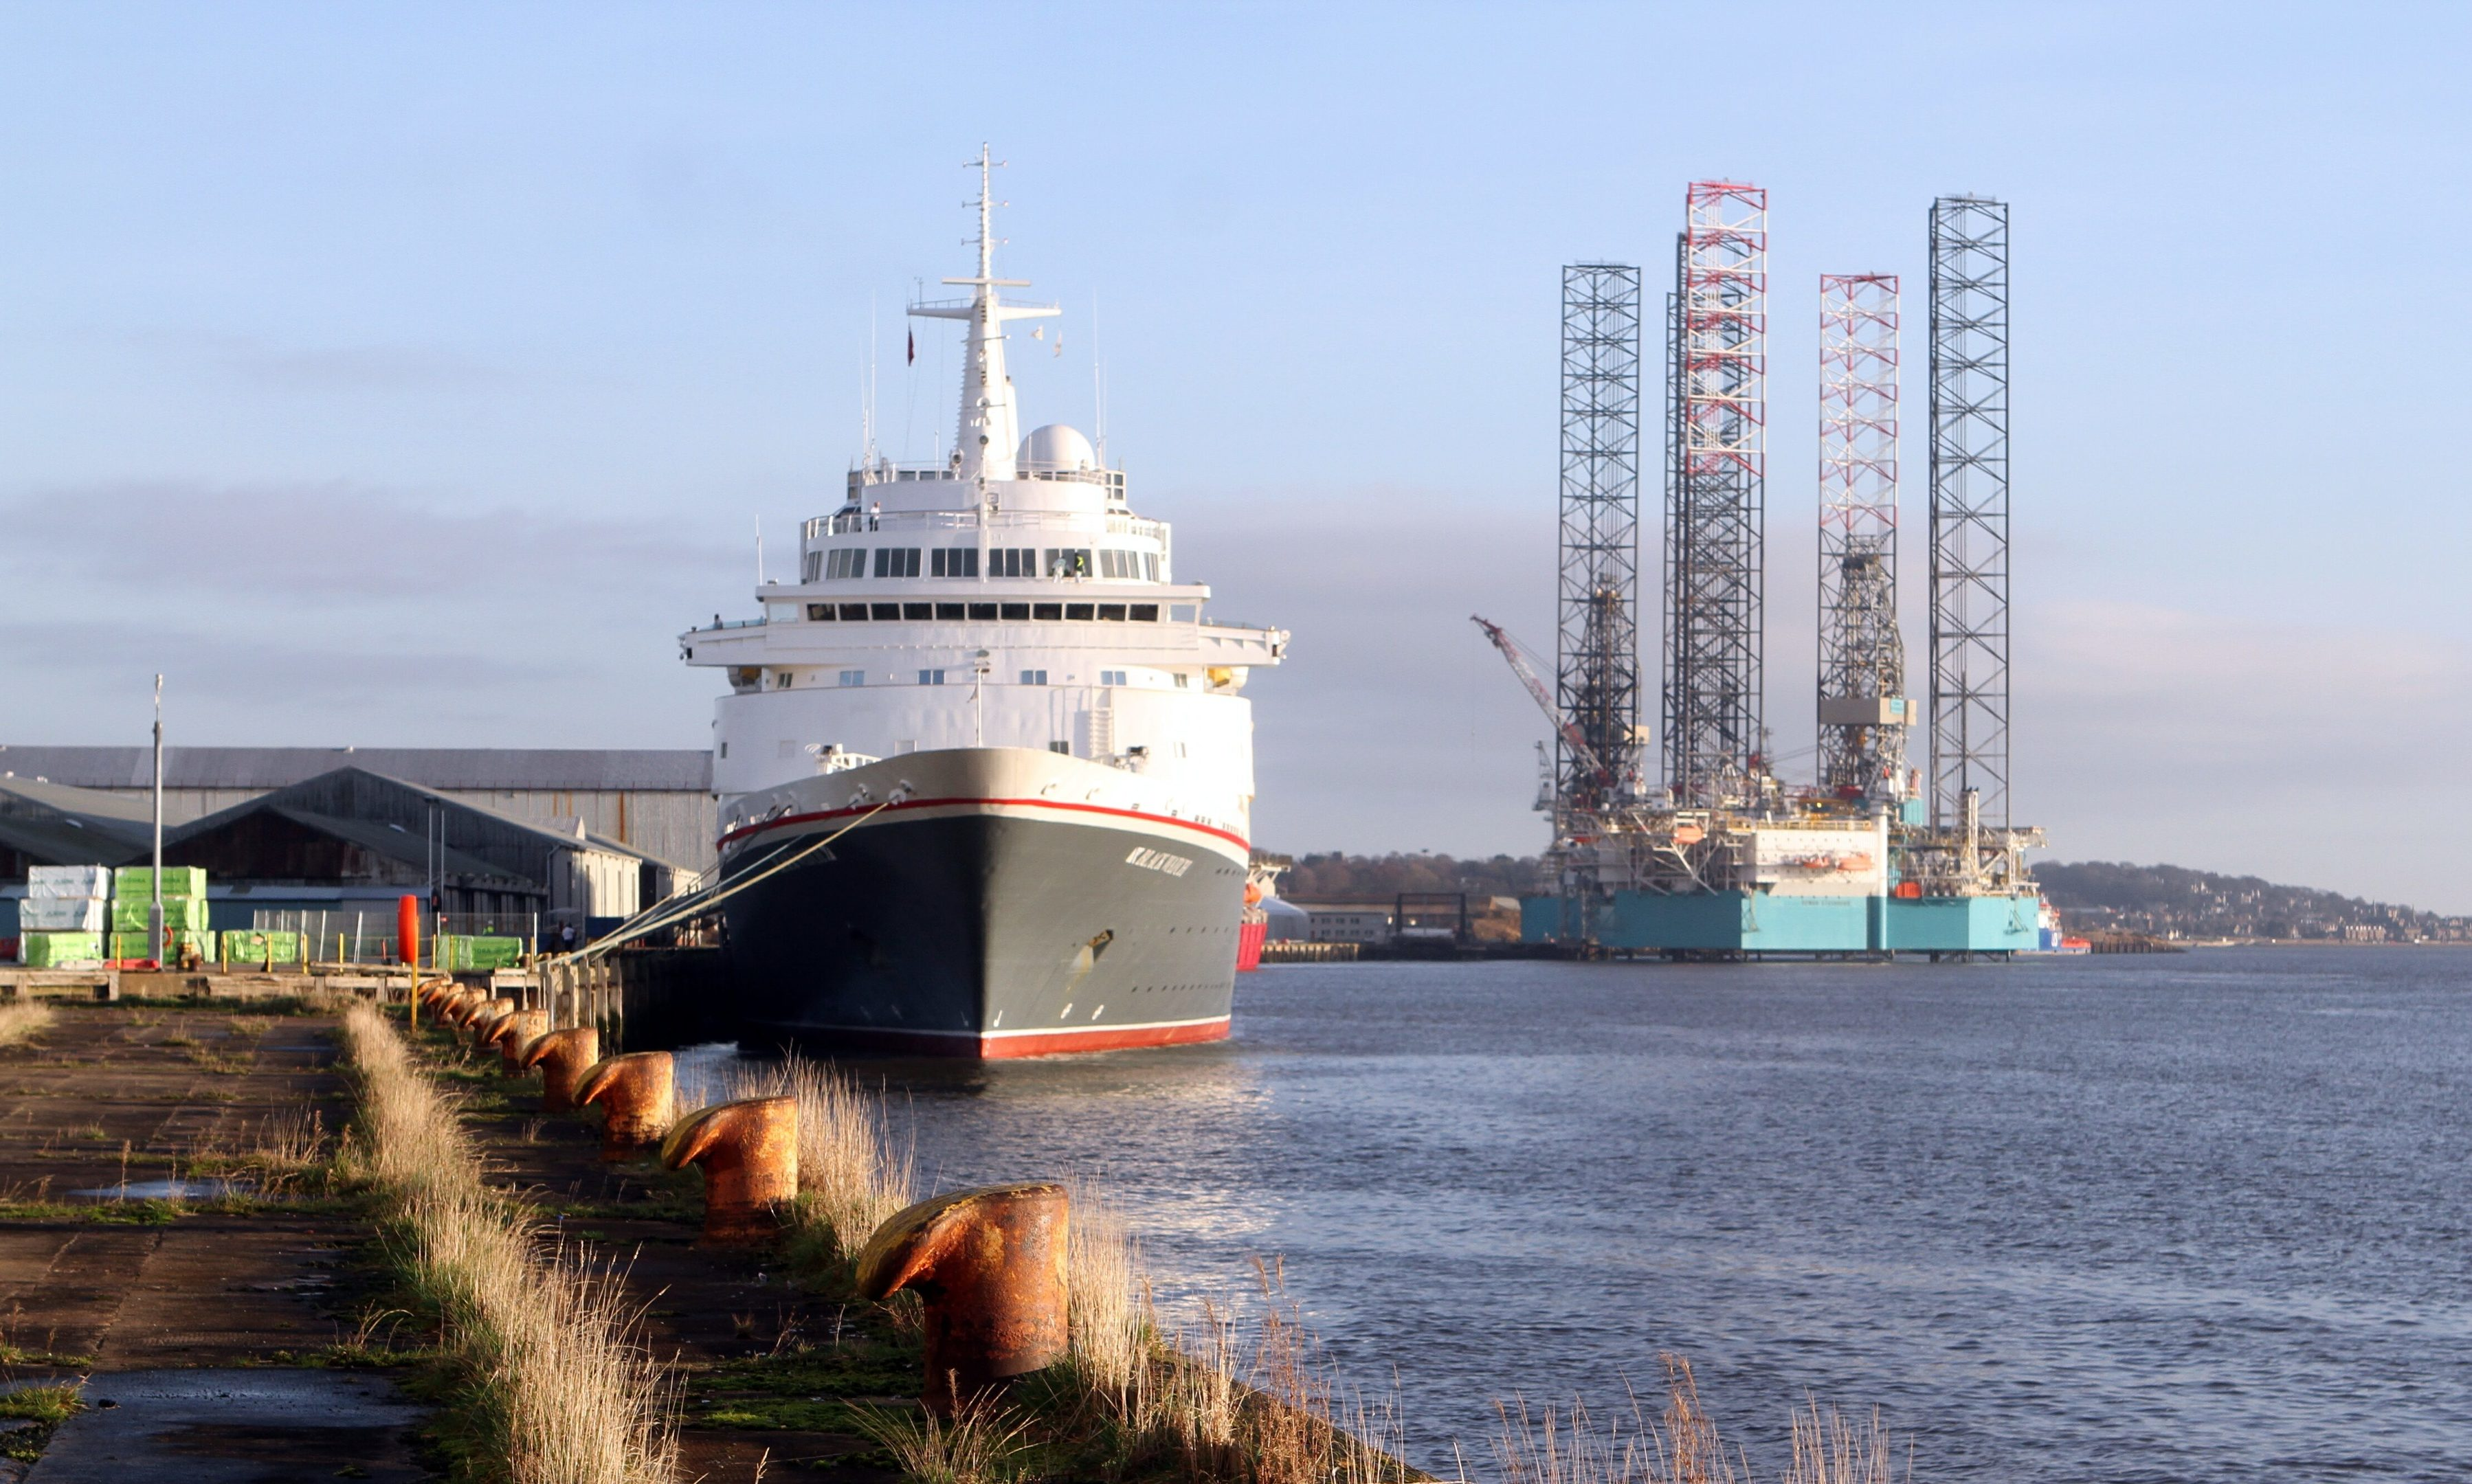 The Black Watch berthed in Dundee yesterday